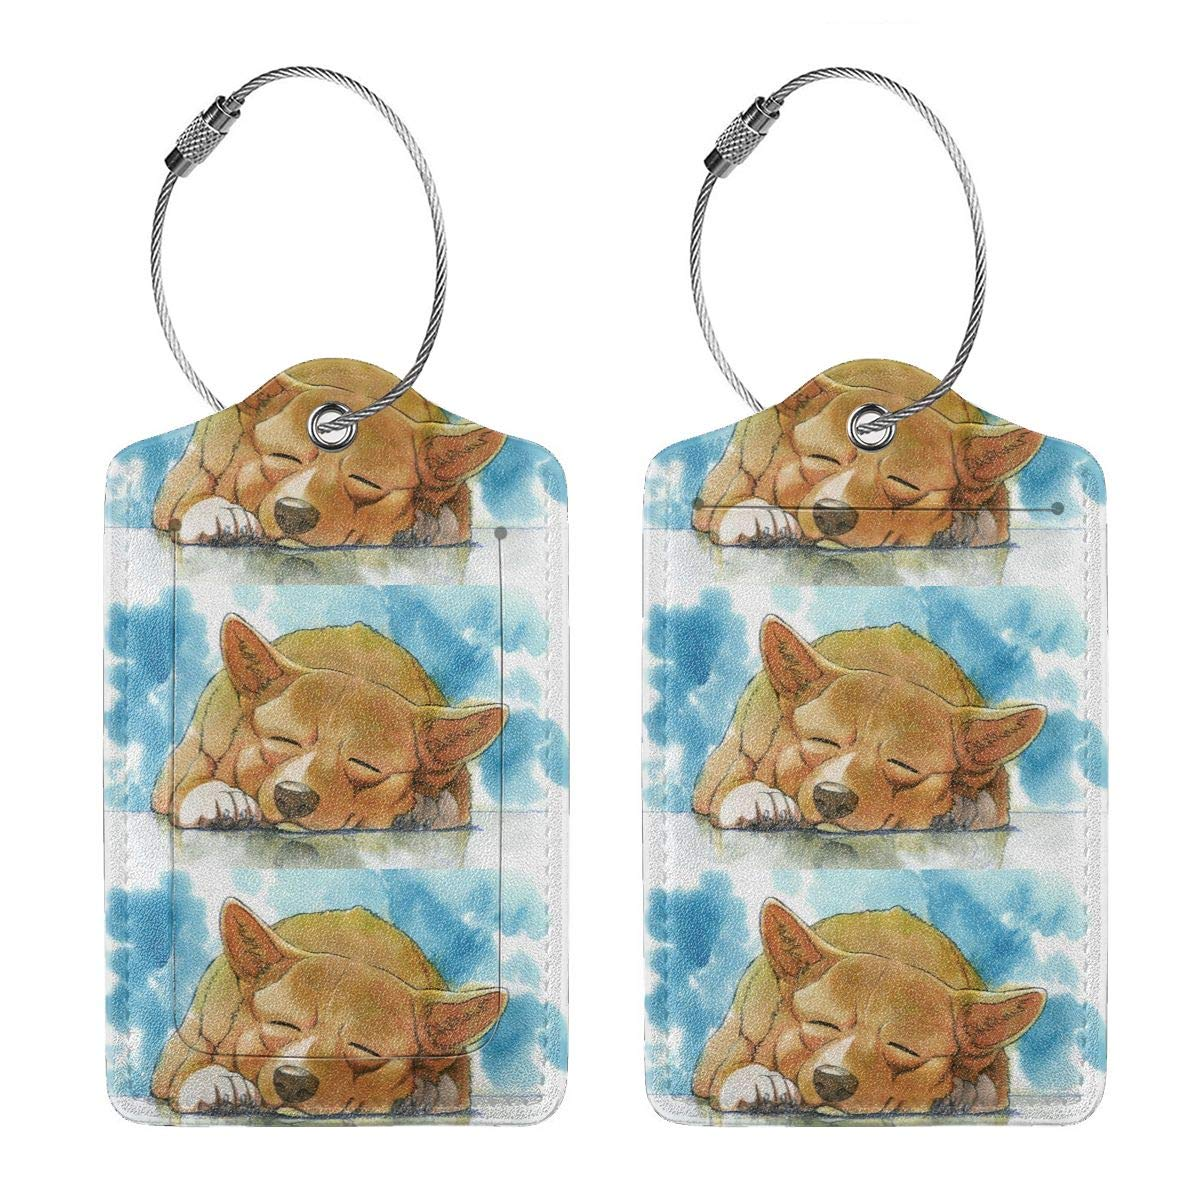 Sleeping Dog Leather Luggage Tags Suitcase Tag Travel Bag Labels With Privacy Cover For Men Women 2 Pack 4 Pack